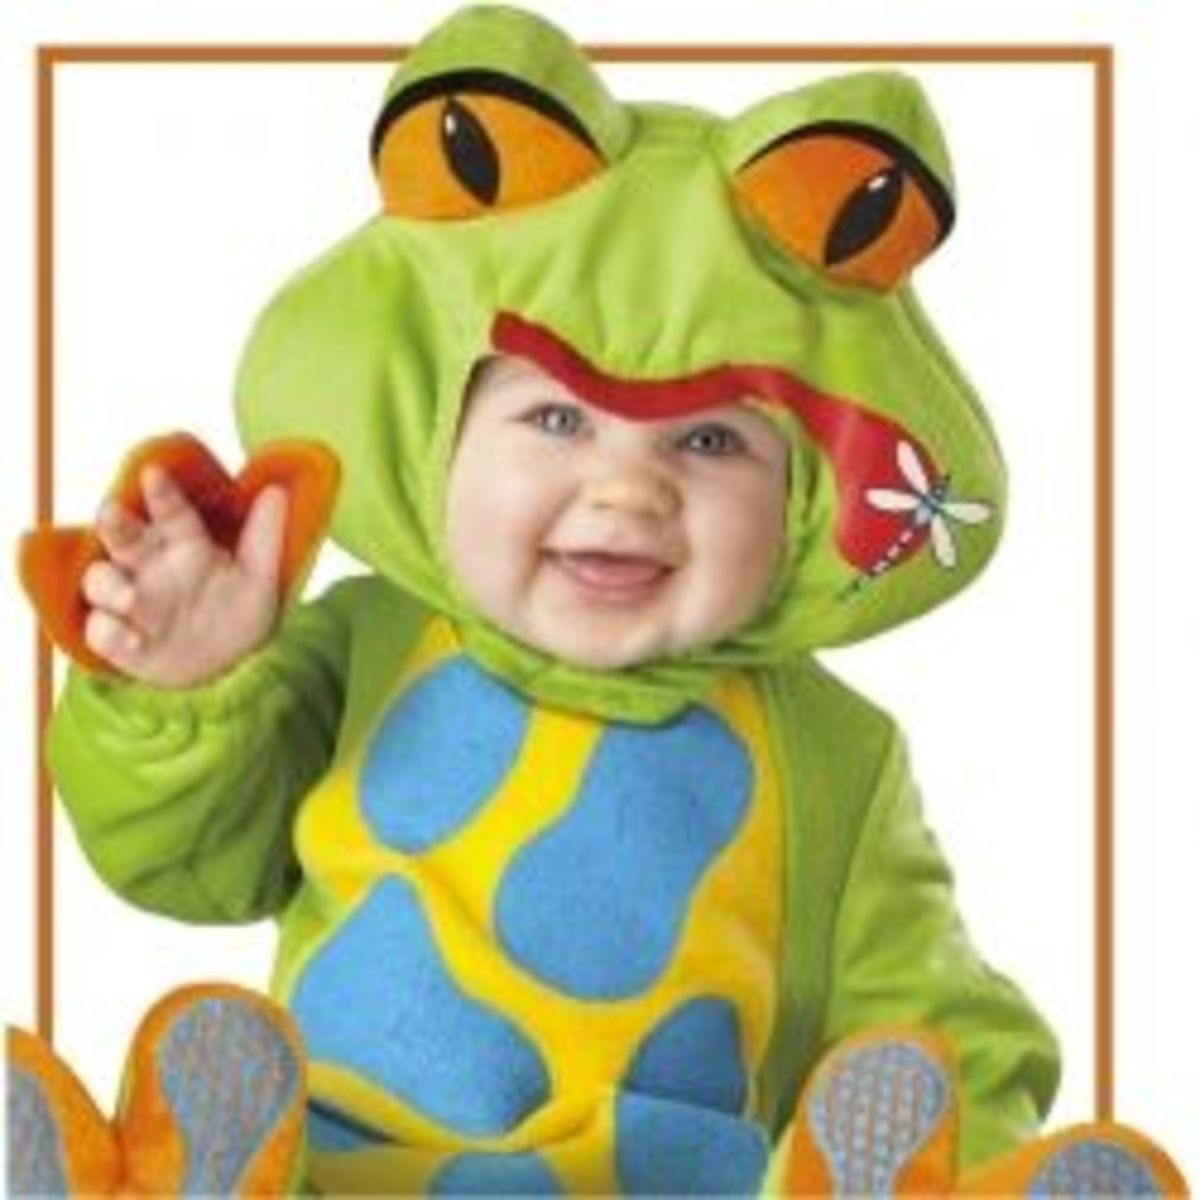 Adorable Animal Costumes for Baby's First Halloween